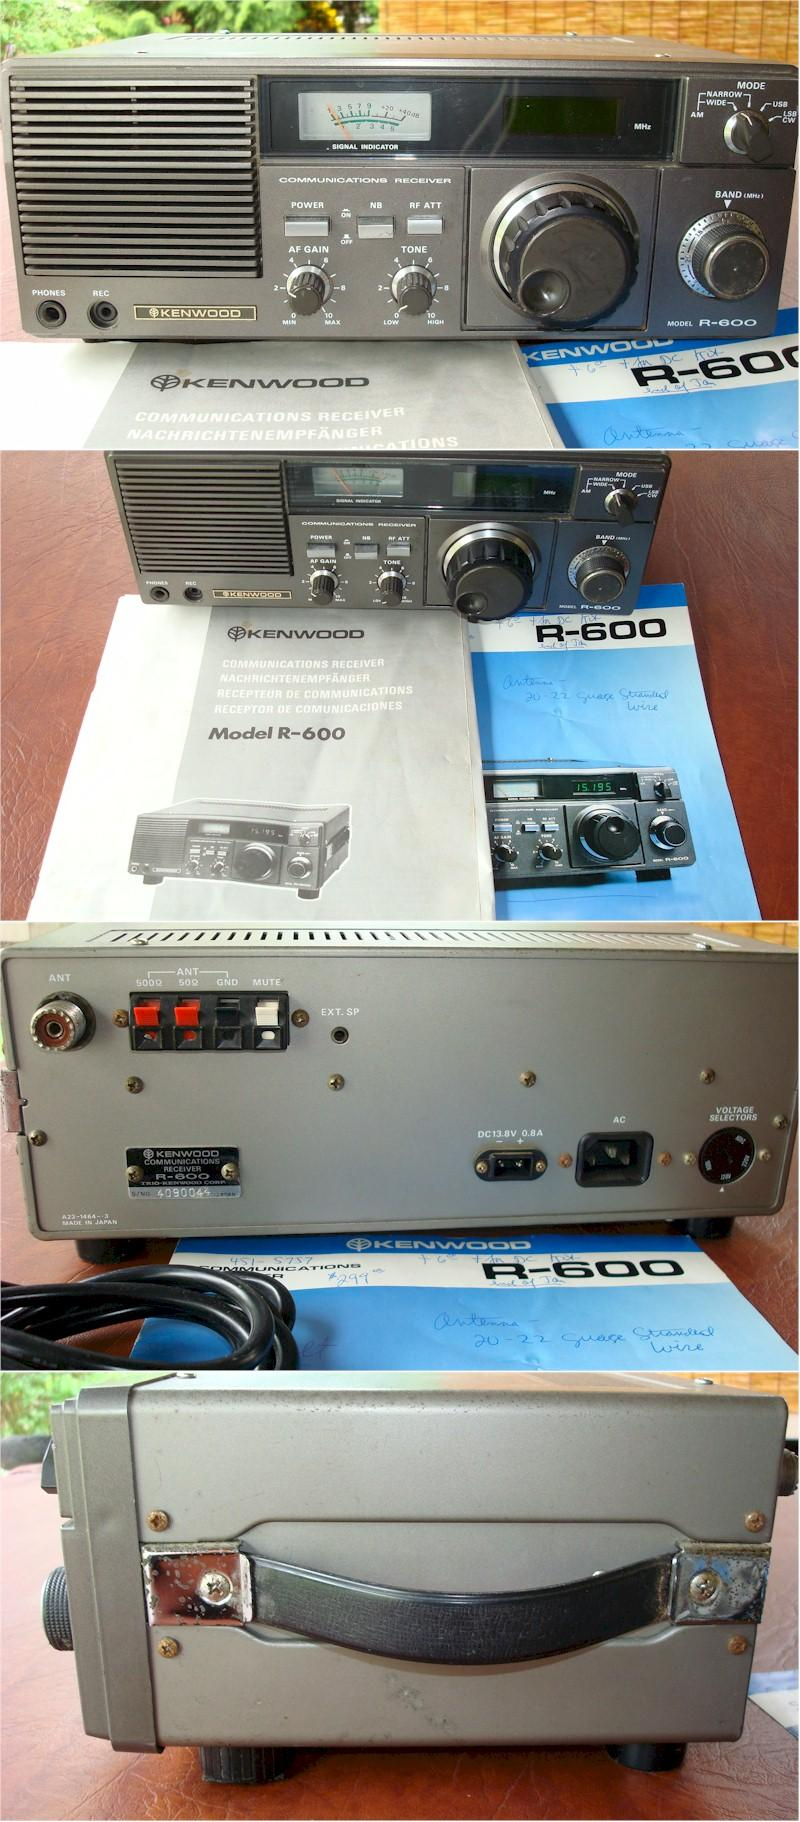 Kenwood R-600 Communications Receiver